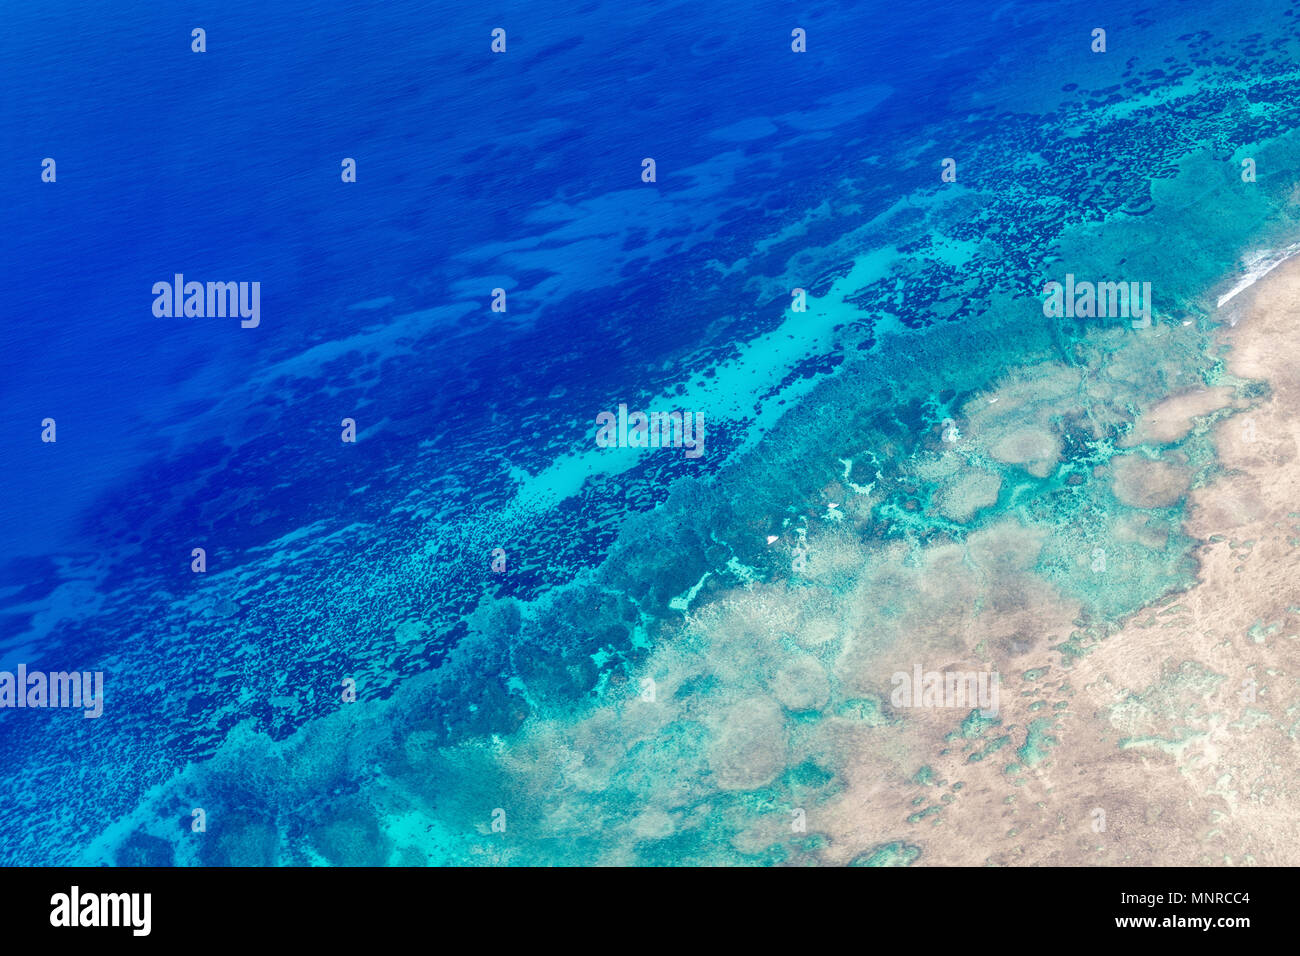 Beautiful view of Quirimbas archipilago in Mozambique from above - Stock Image